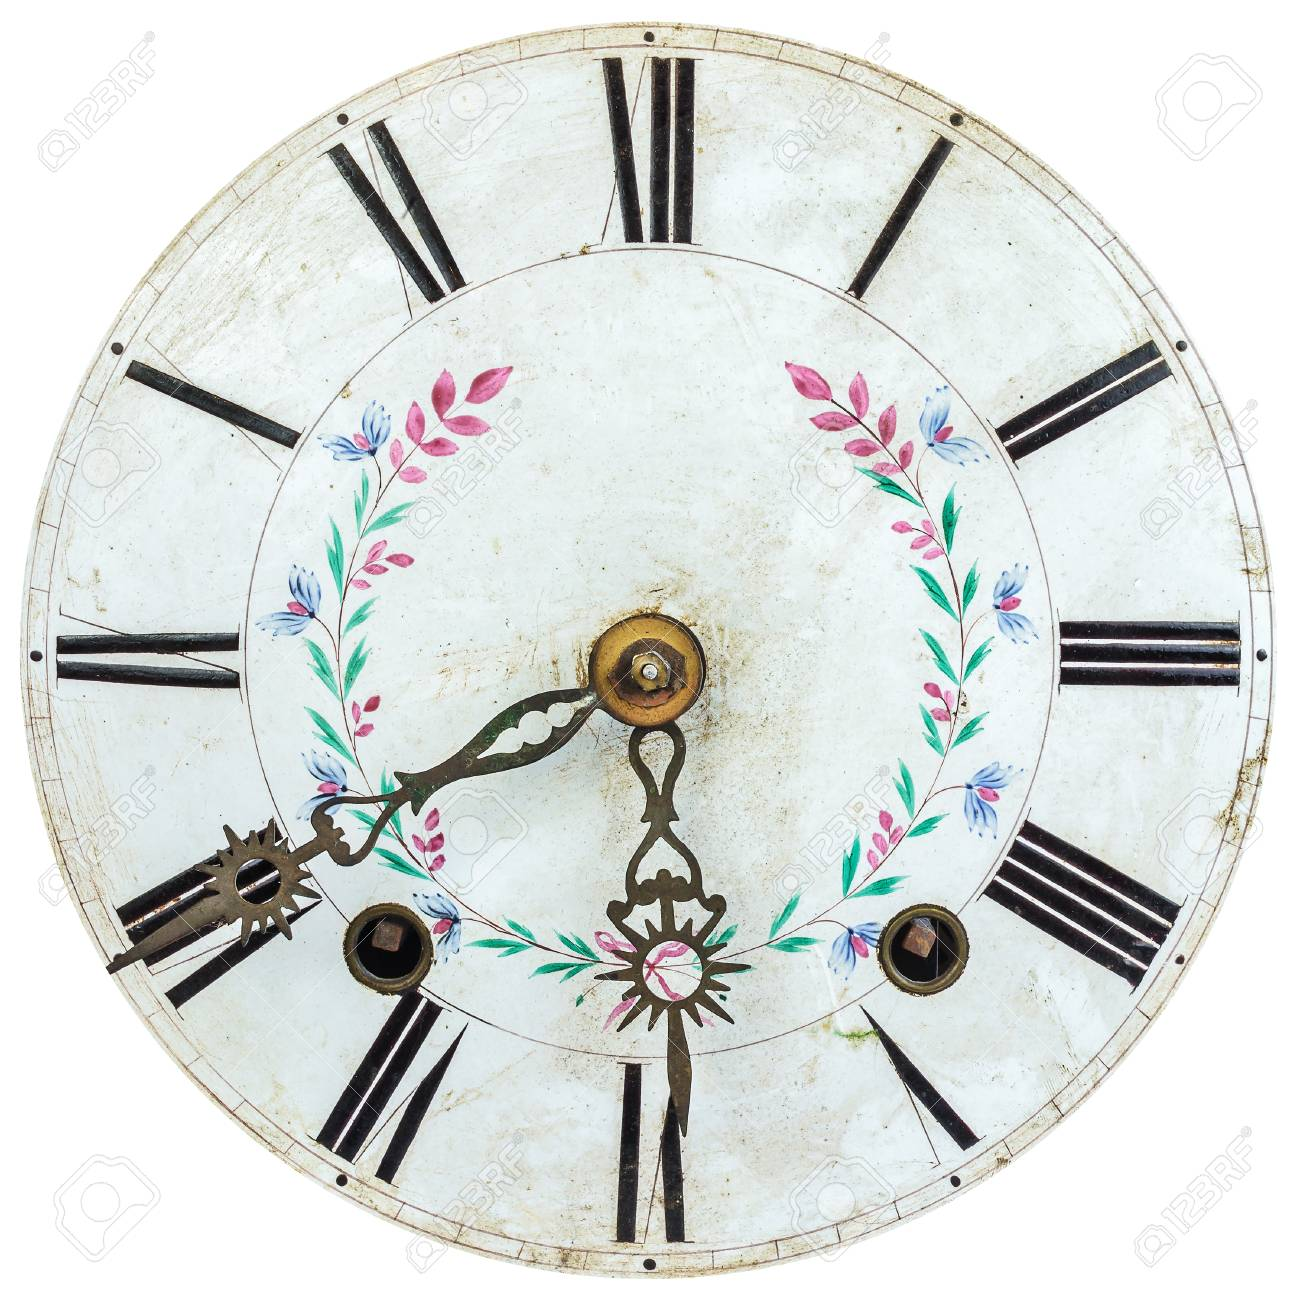 Oval Clock Face Authentic Eighteenth Century Clock Face With Flower Decoration